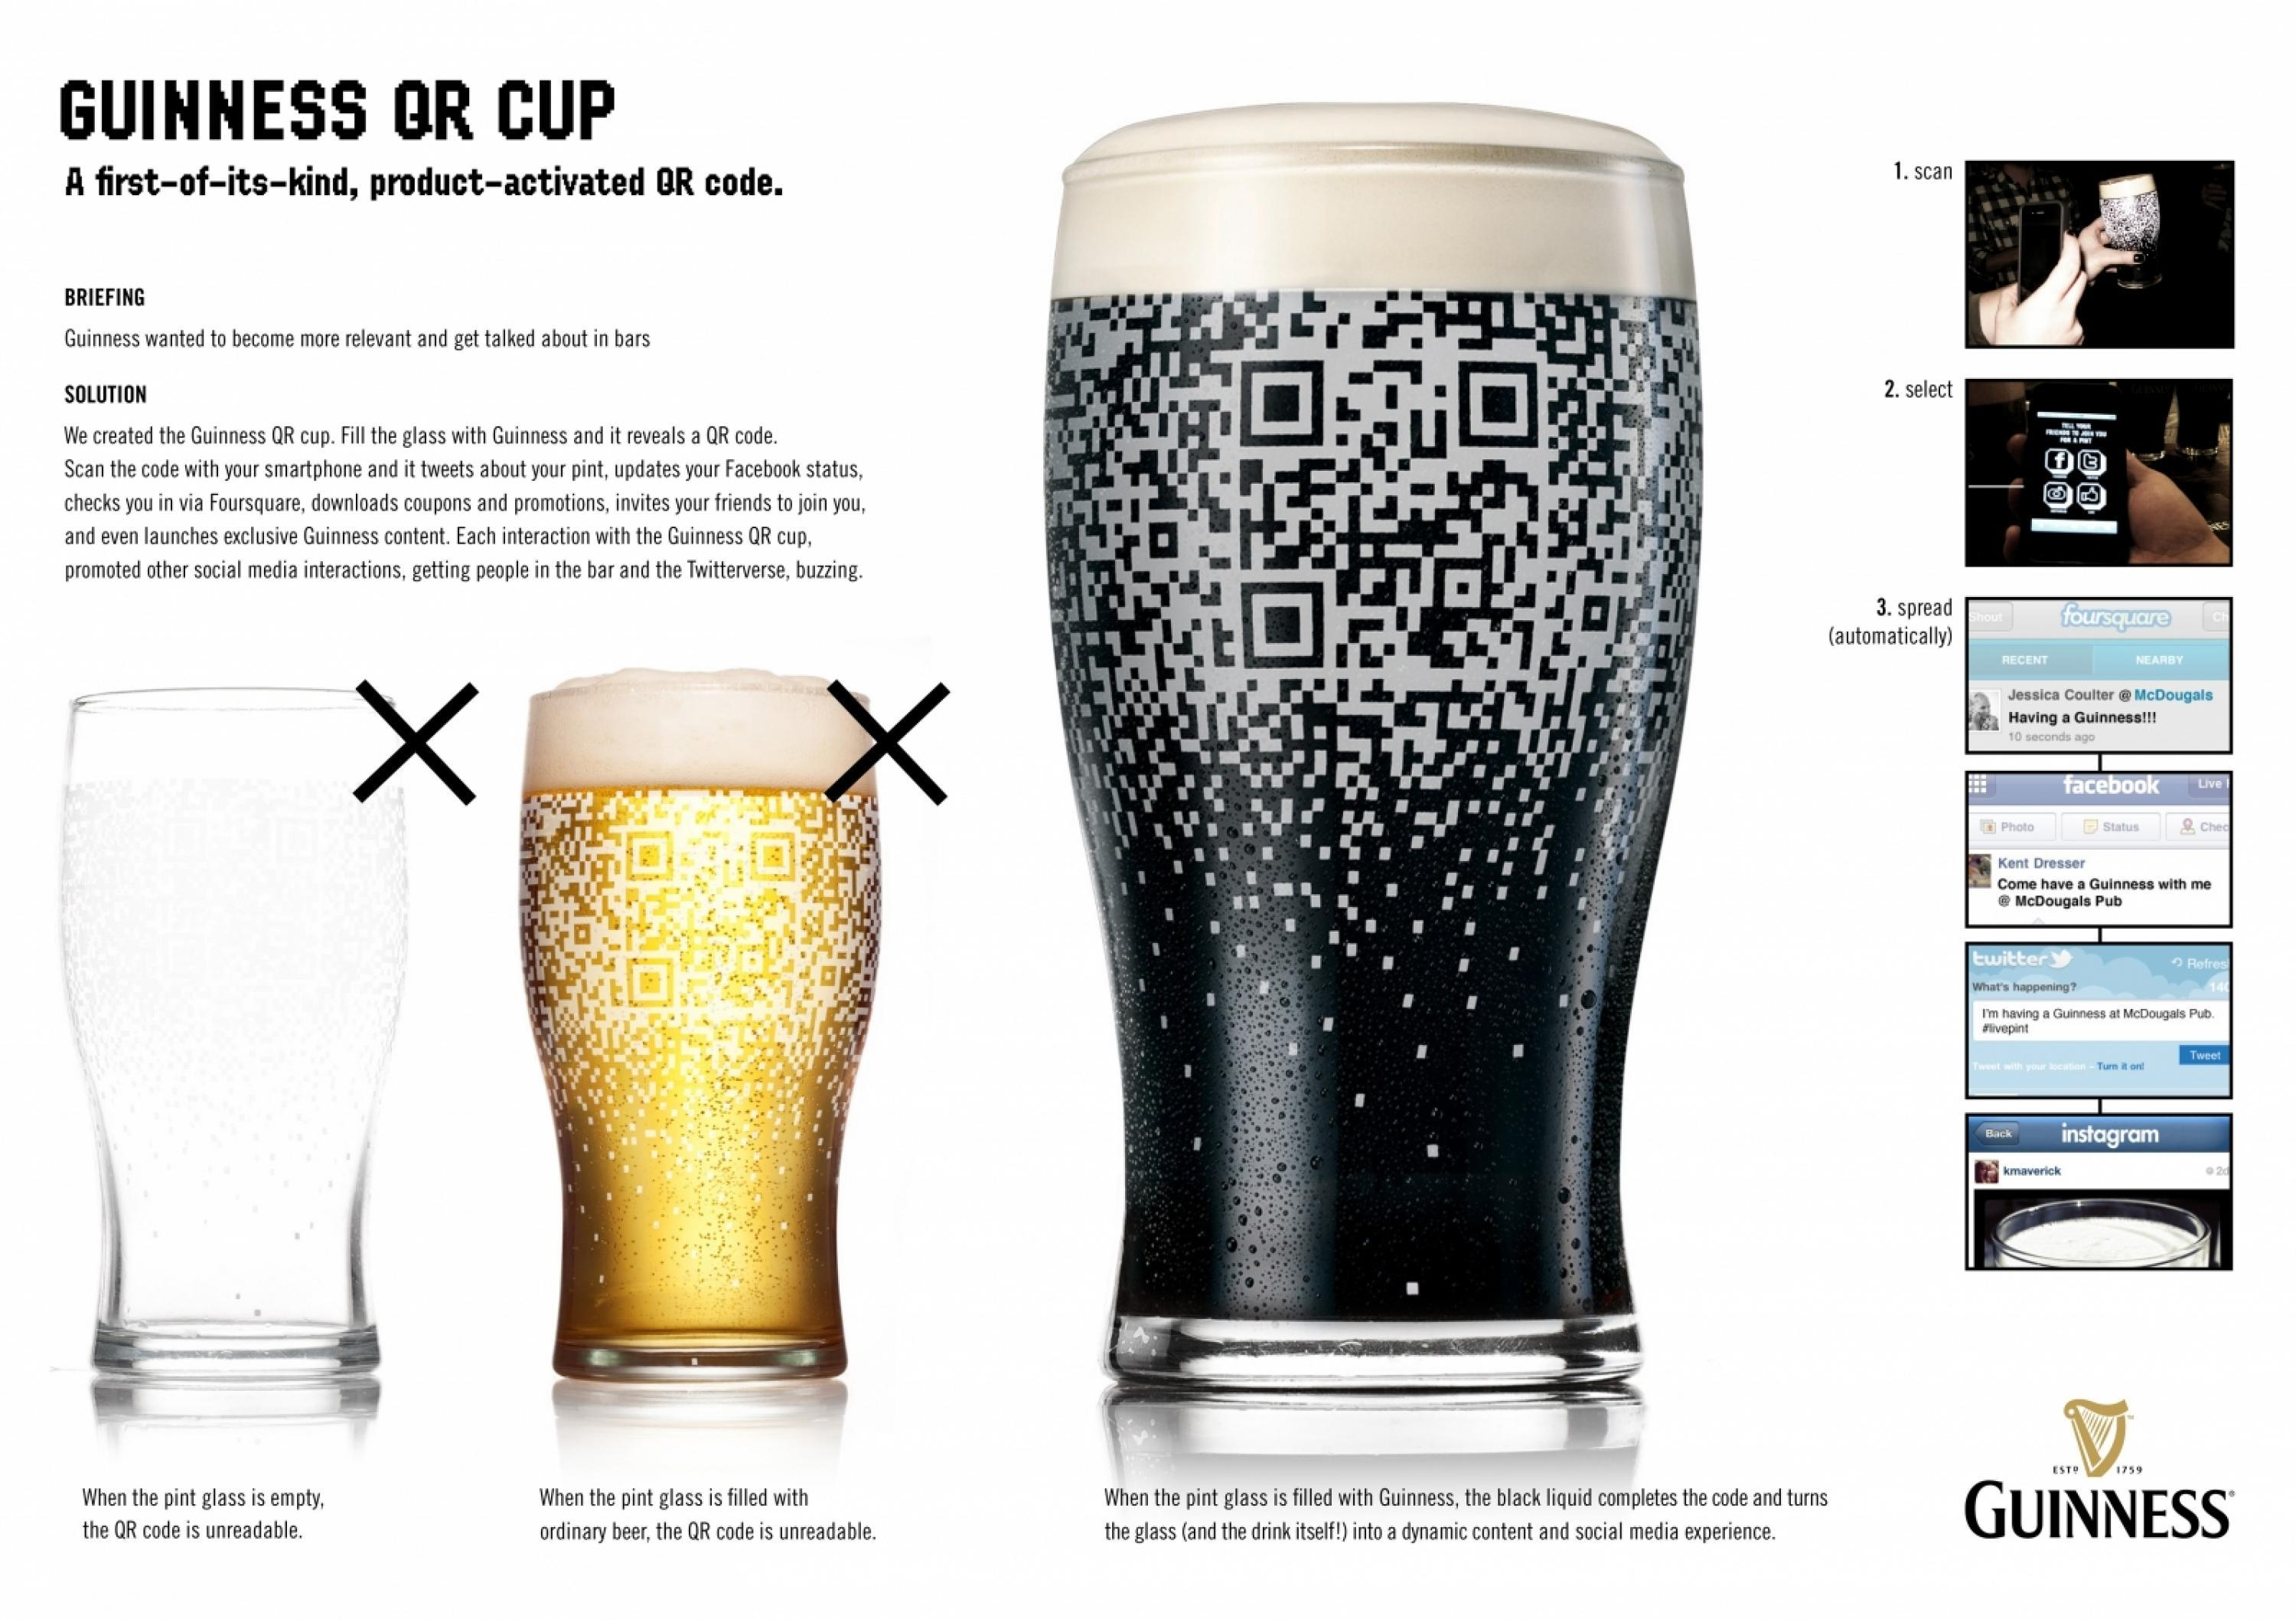 diageo-alcohol-the-guinness-qr-cup-direct-marketing-269031-adeevee